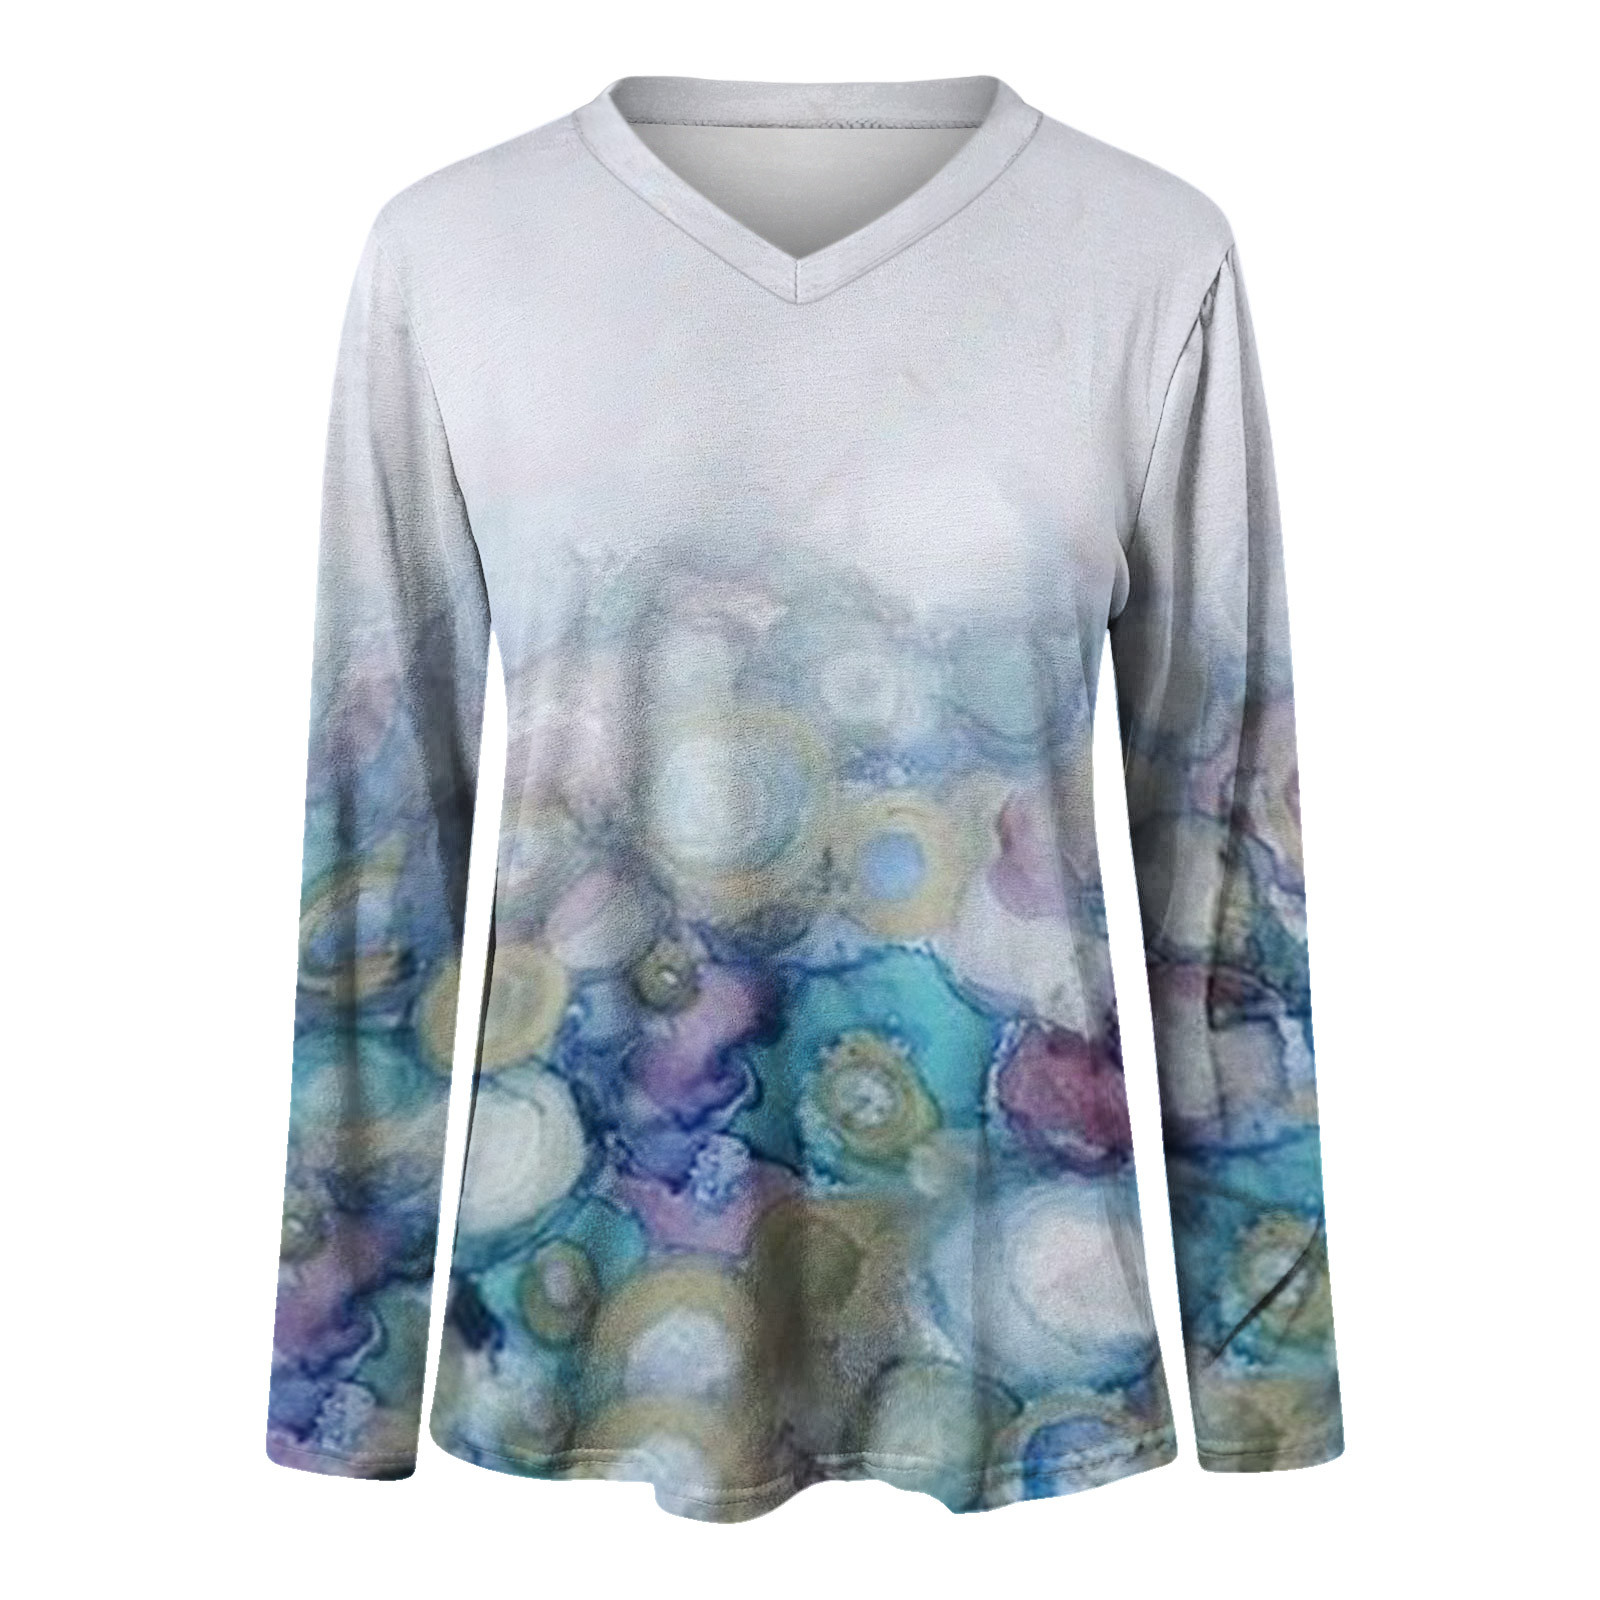 Women's Autumn Blouse Fashion Feather Printed V-neck Blouses Casual Long-sleeved Loose Ladies Top Blusas Mujer De Moda 2021